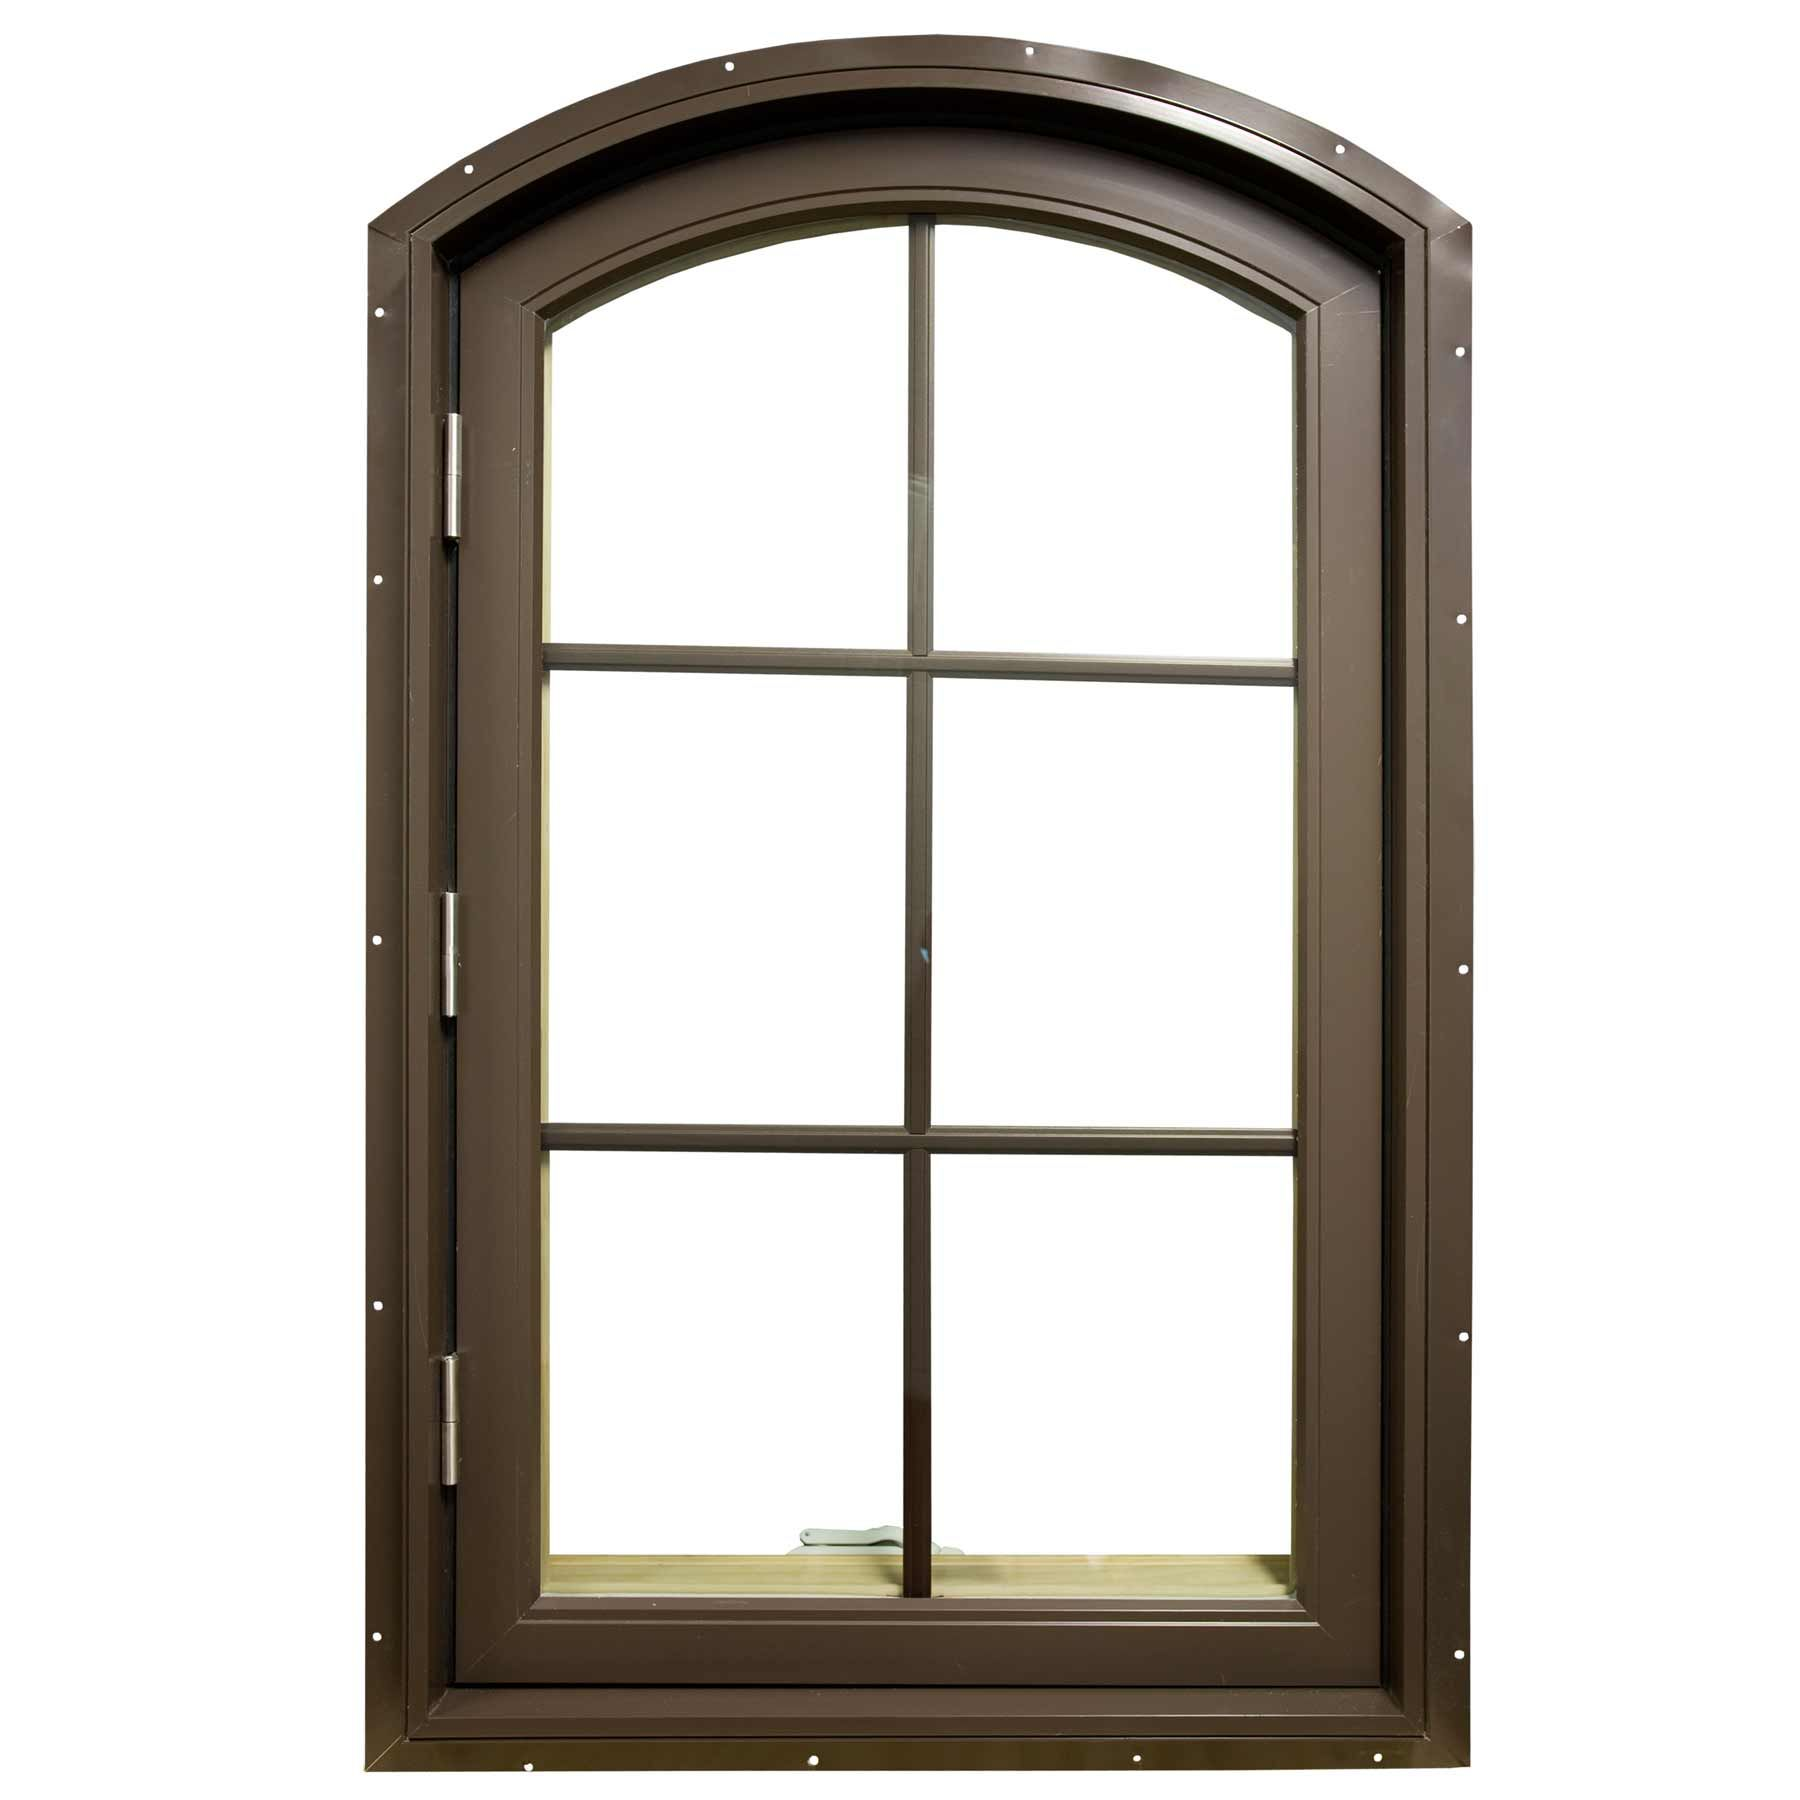 Aluminum casement windows for home feel the home for Vinyl home windows